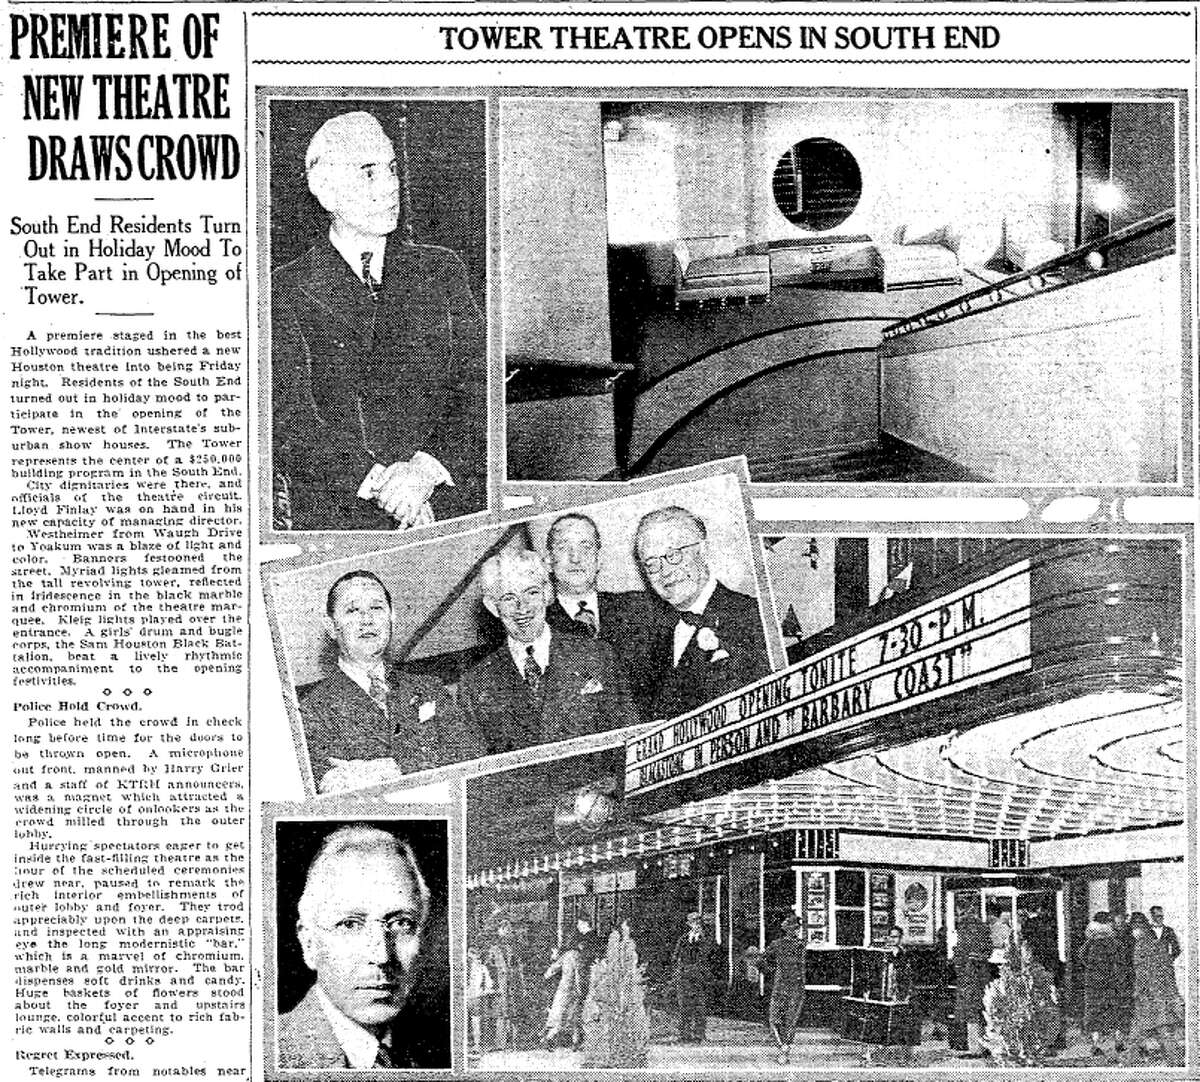 A snippet from the Feb. 15, 1936 edition of the Houston Chronicle, announcing the grand opening of the Tower Theatre.